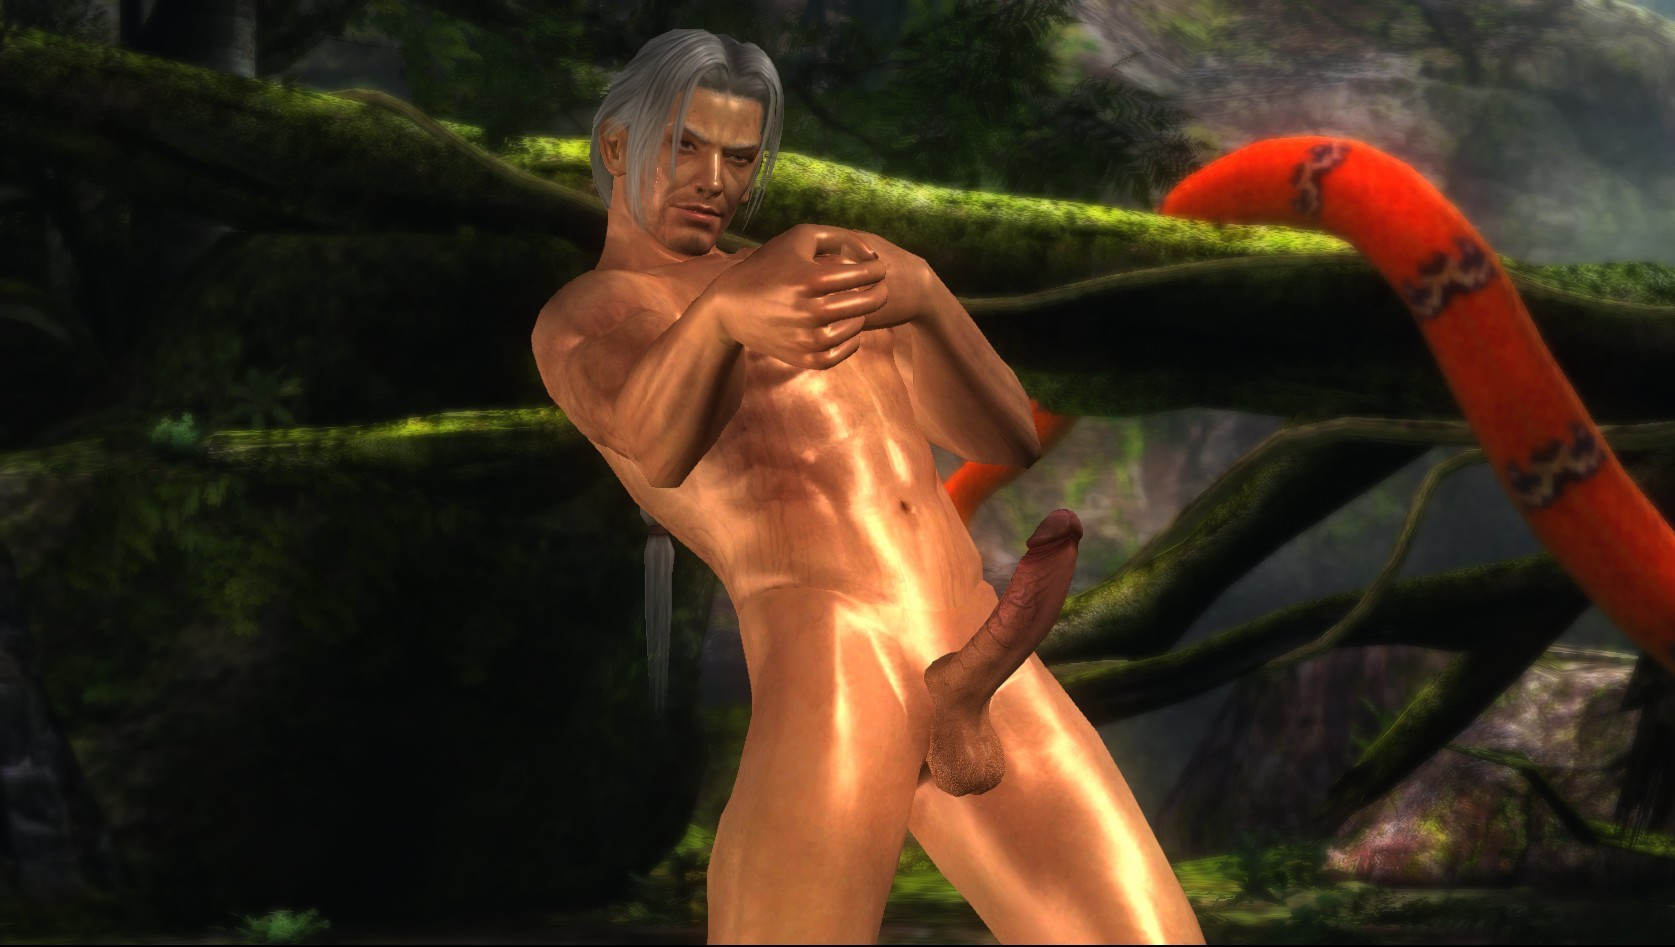 Tombraider nude mod sex videos